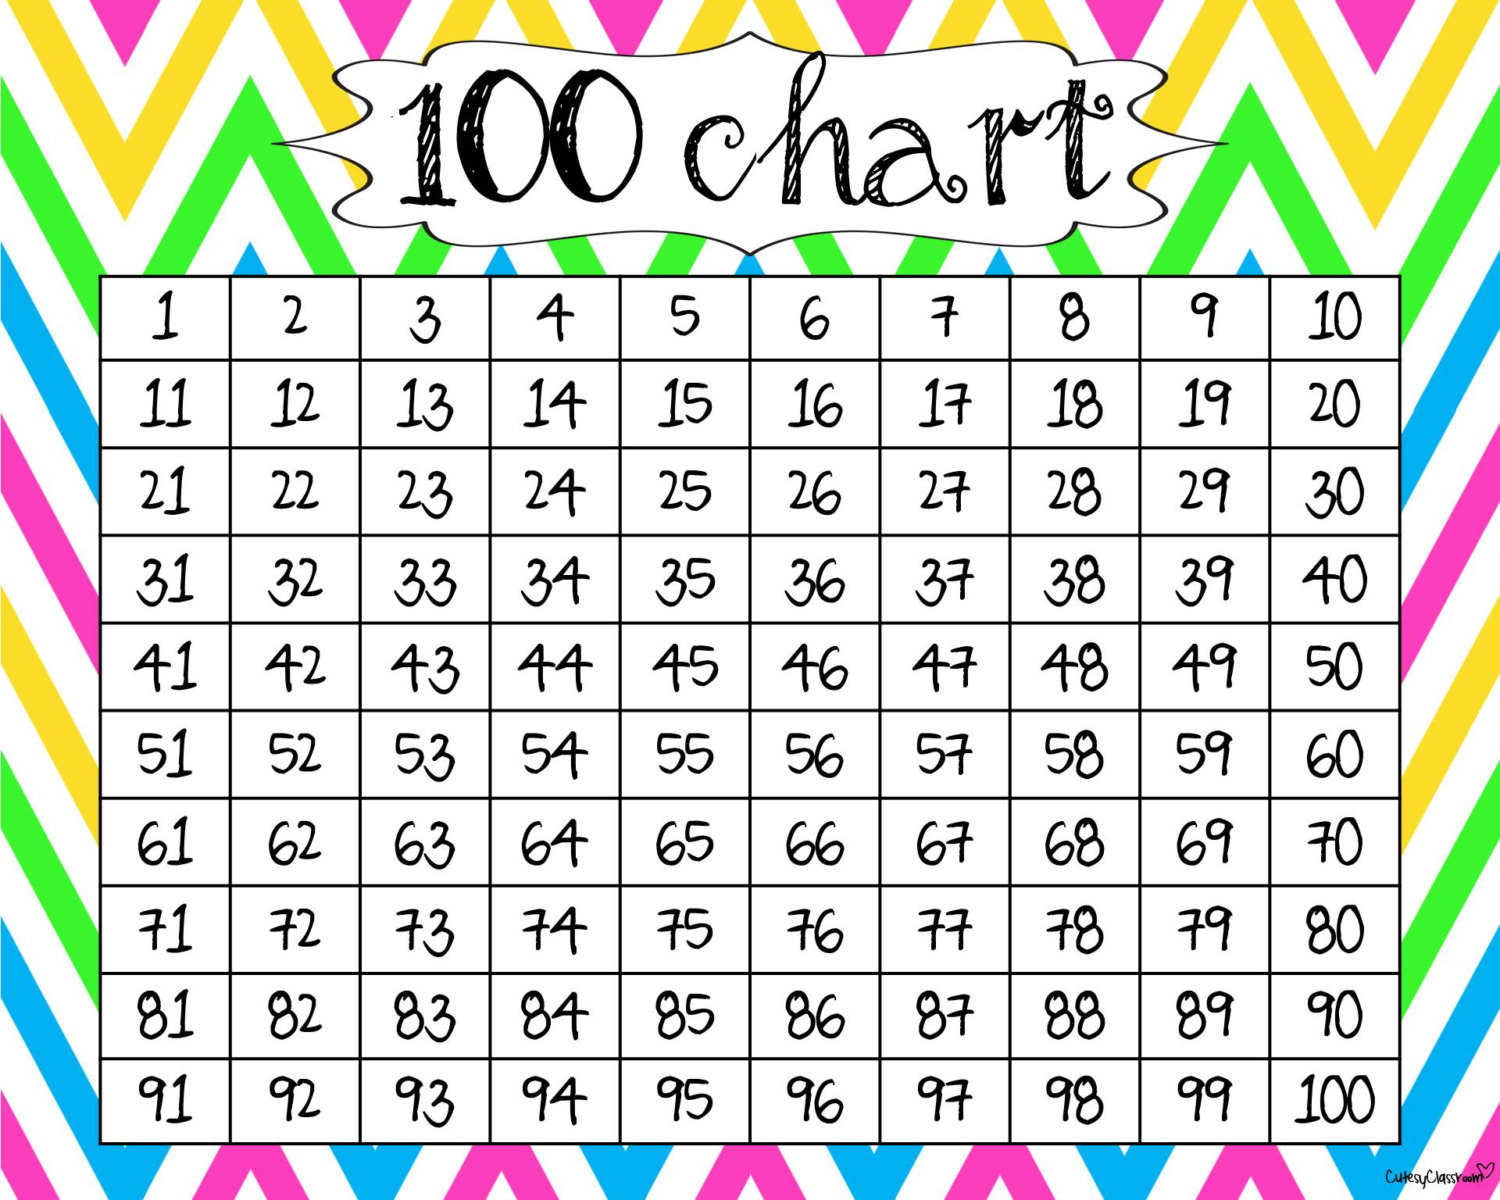 Chart clipart hundred chart. Best photos of hundreds